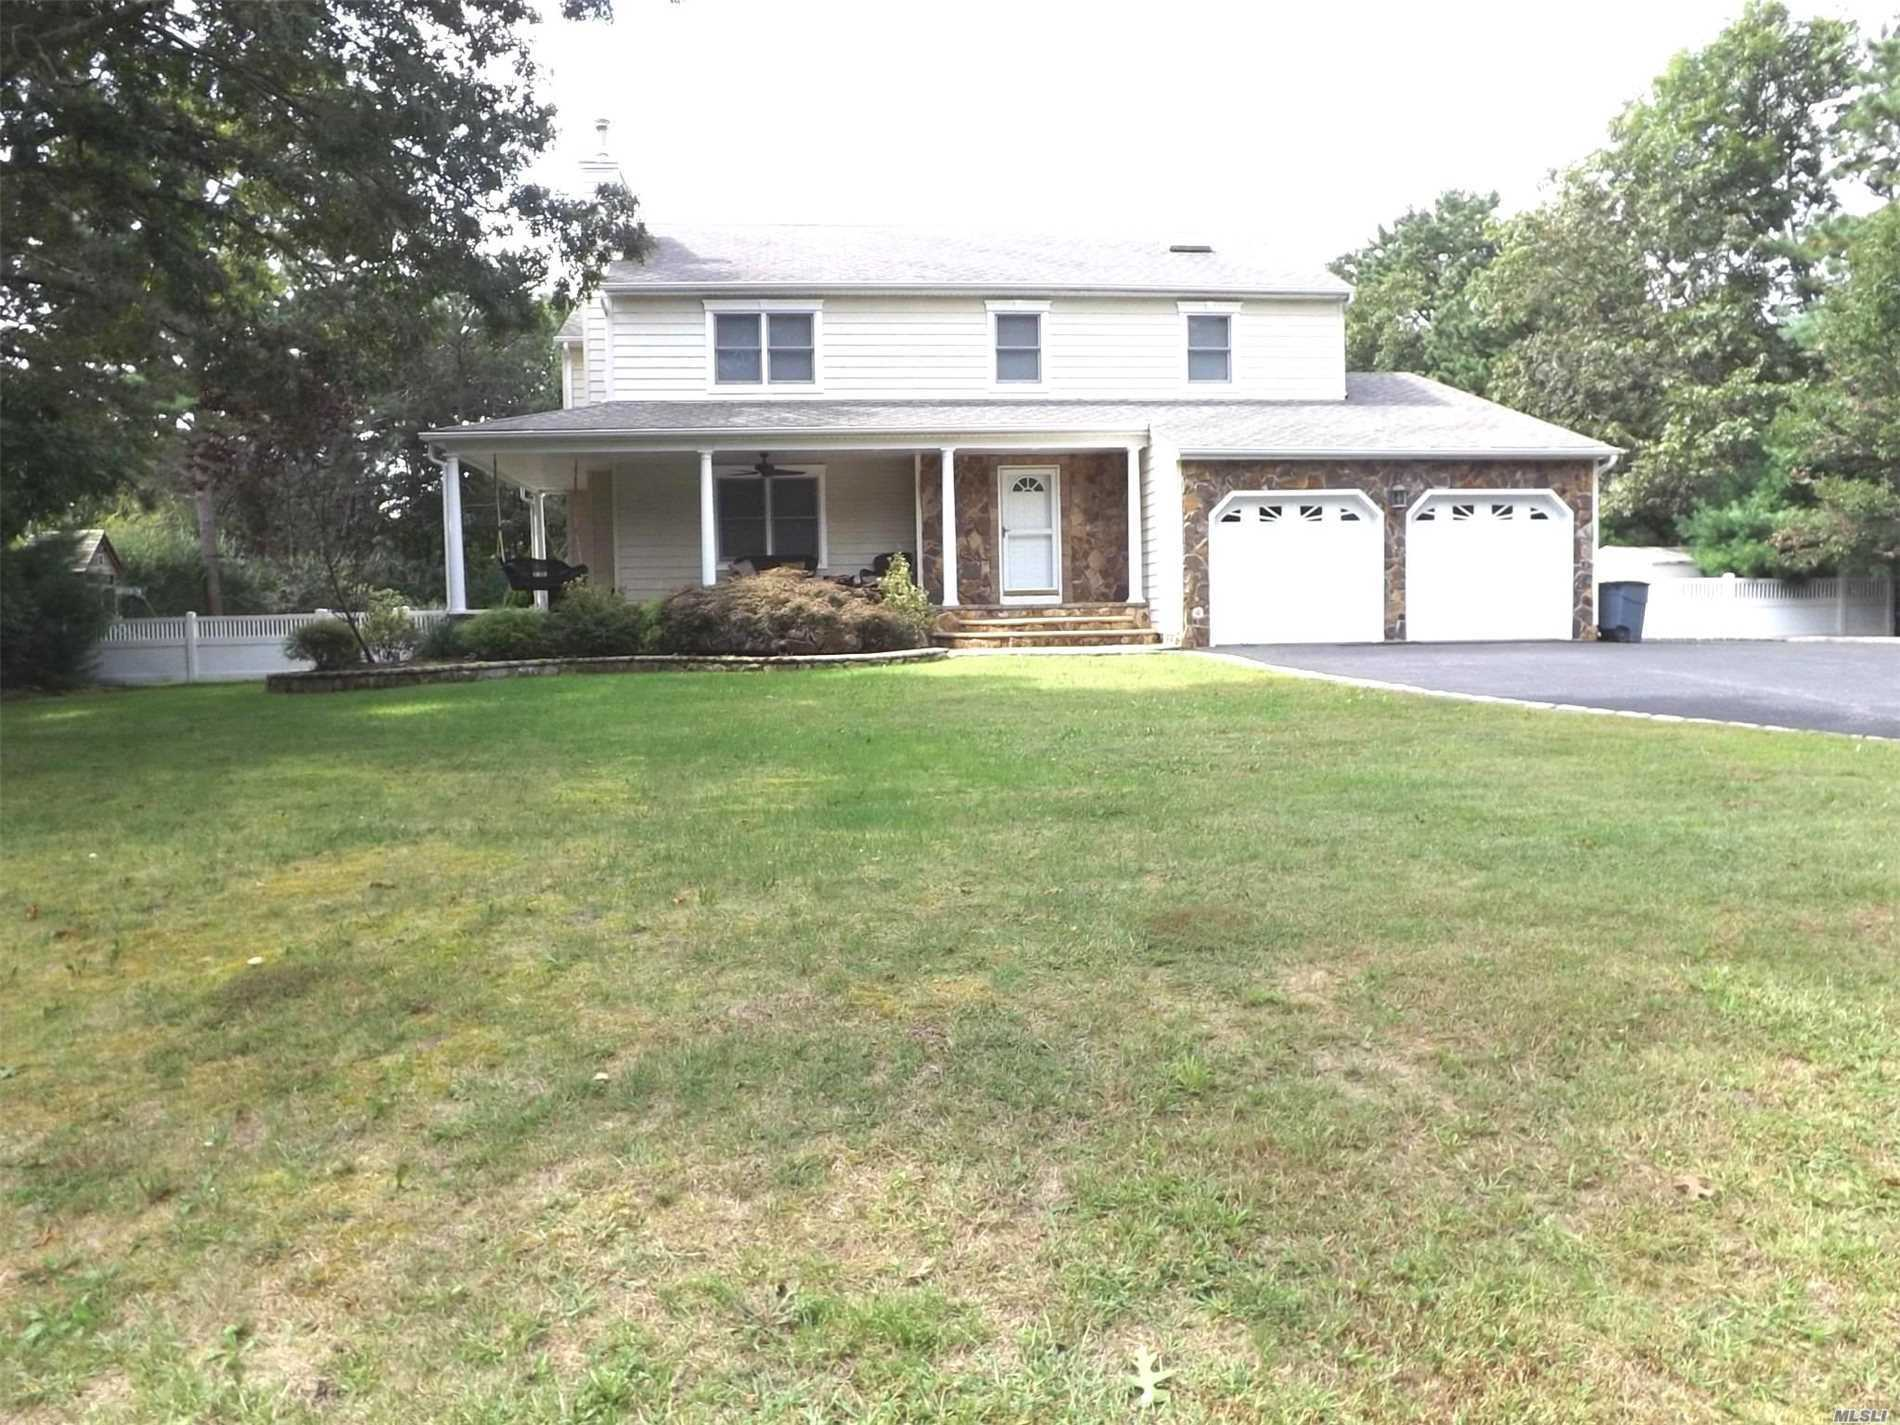 Photo of home for sale at 10 Evergreen Dr, Manorville NY